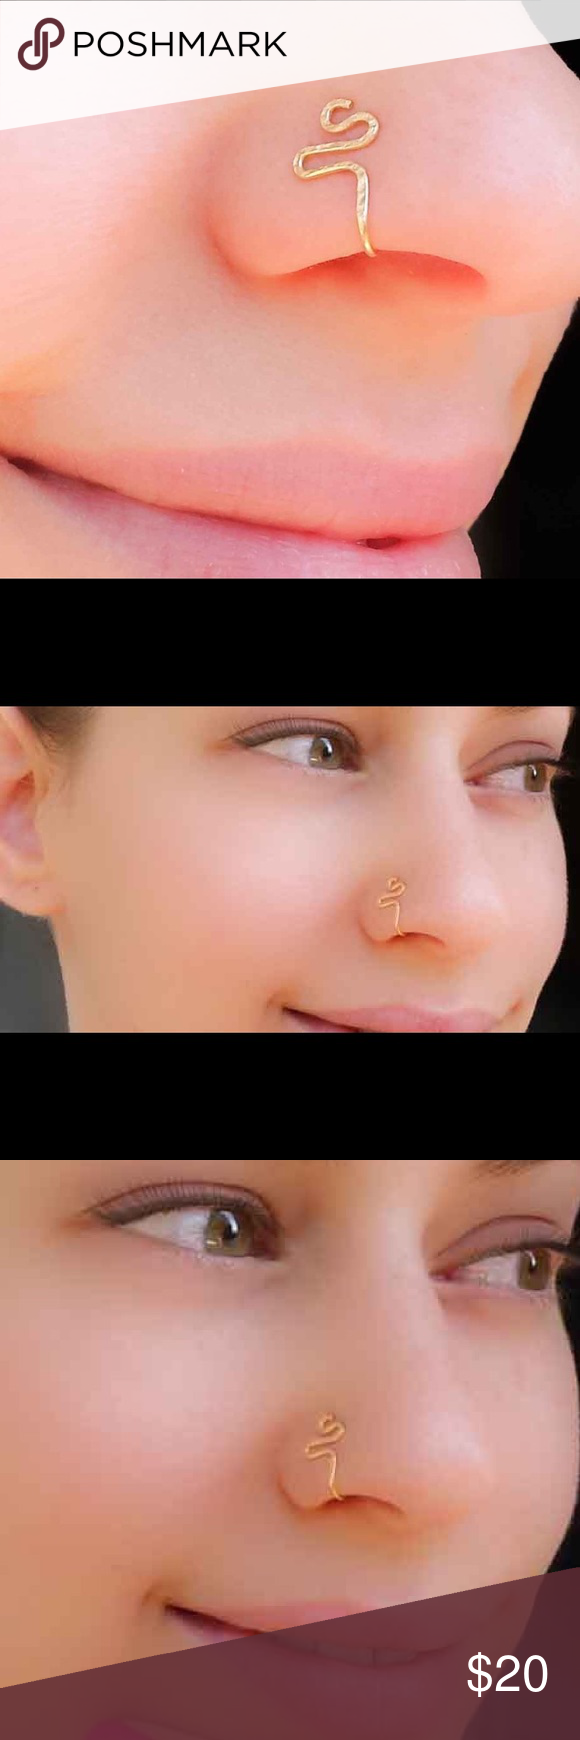 Eyebrow and nose piercing  saleClip on nose ring fake piercing cuff  Piercings y Nariz